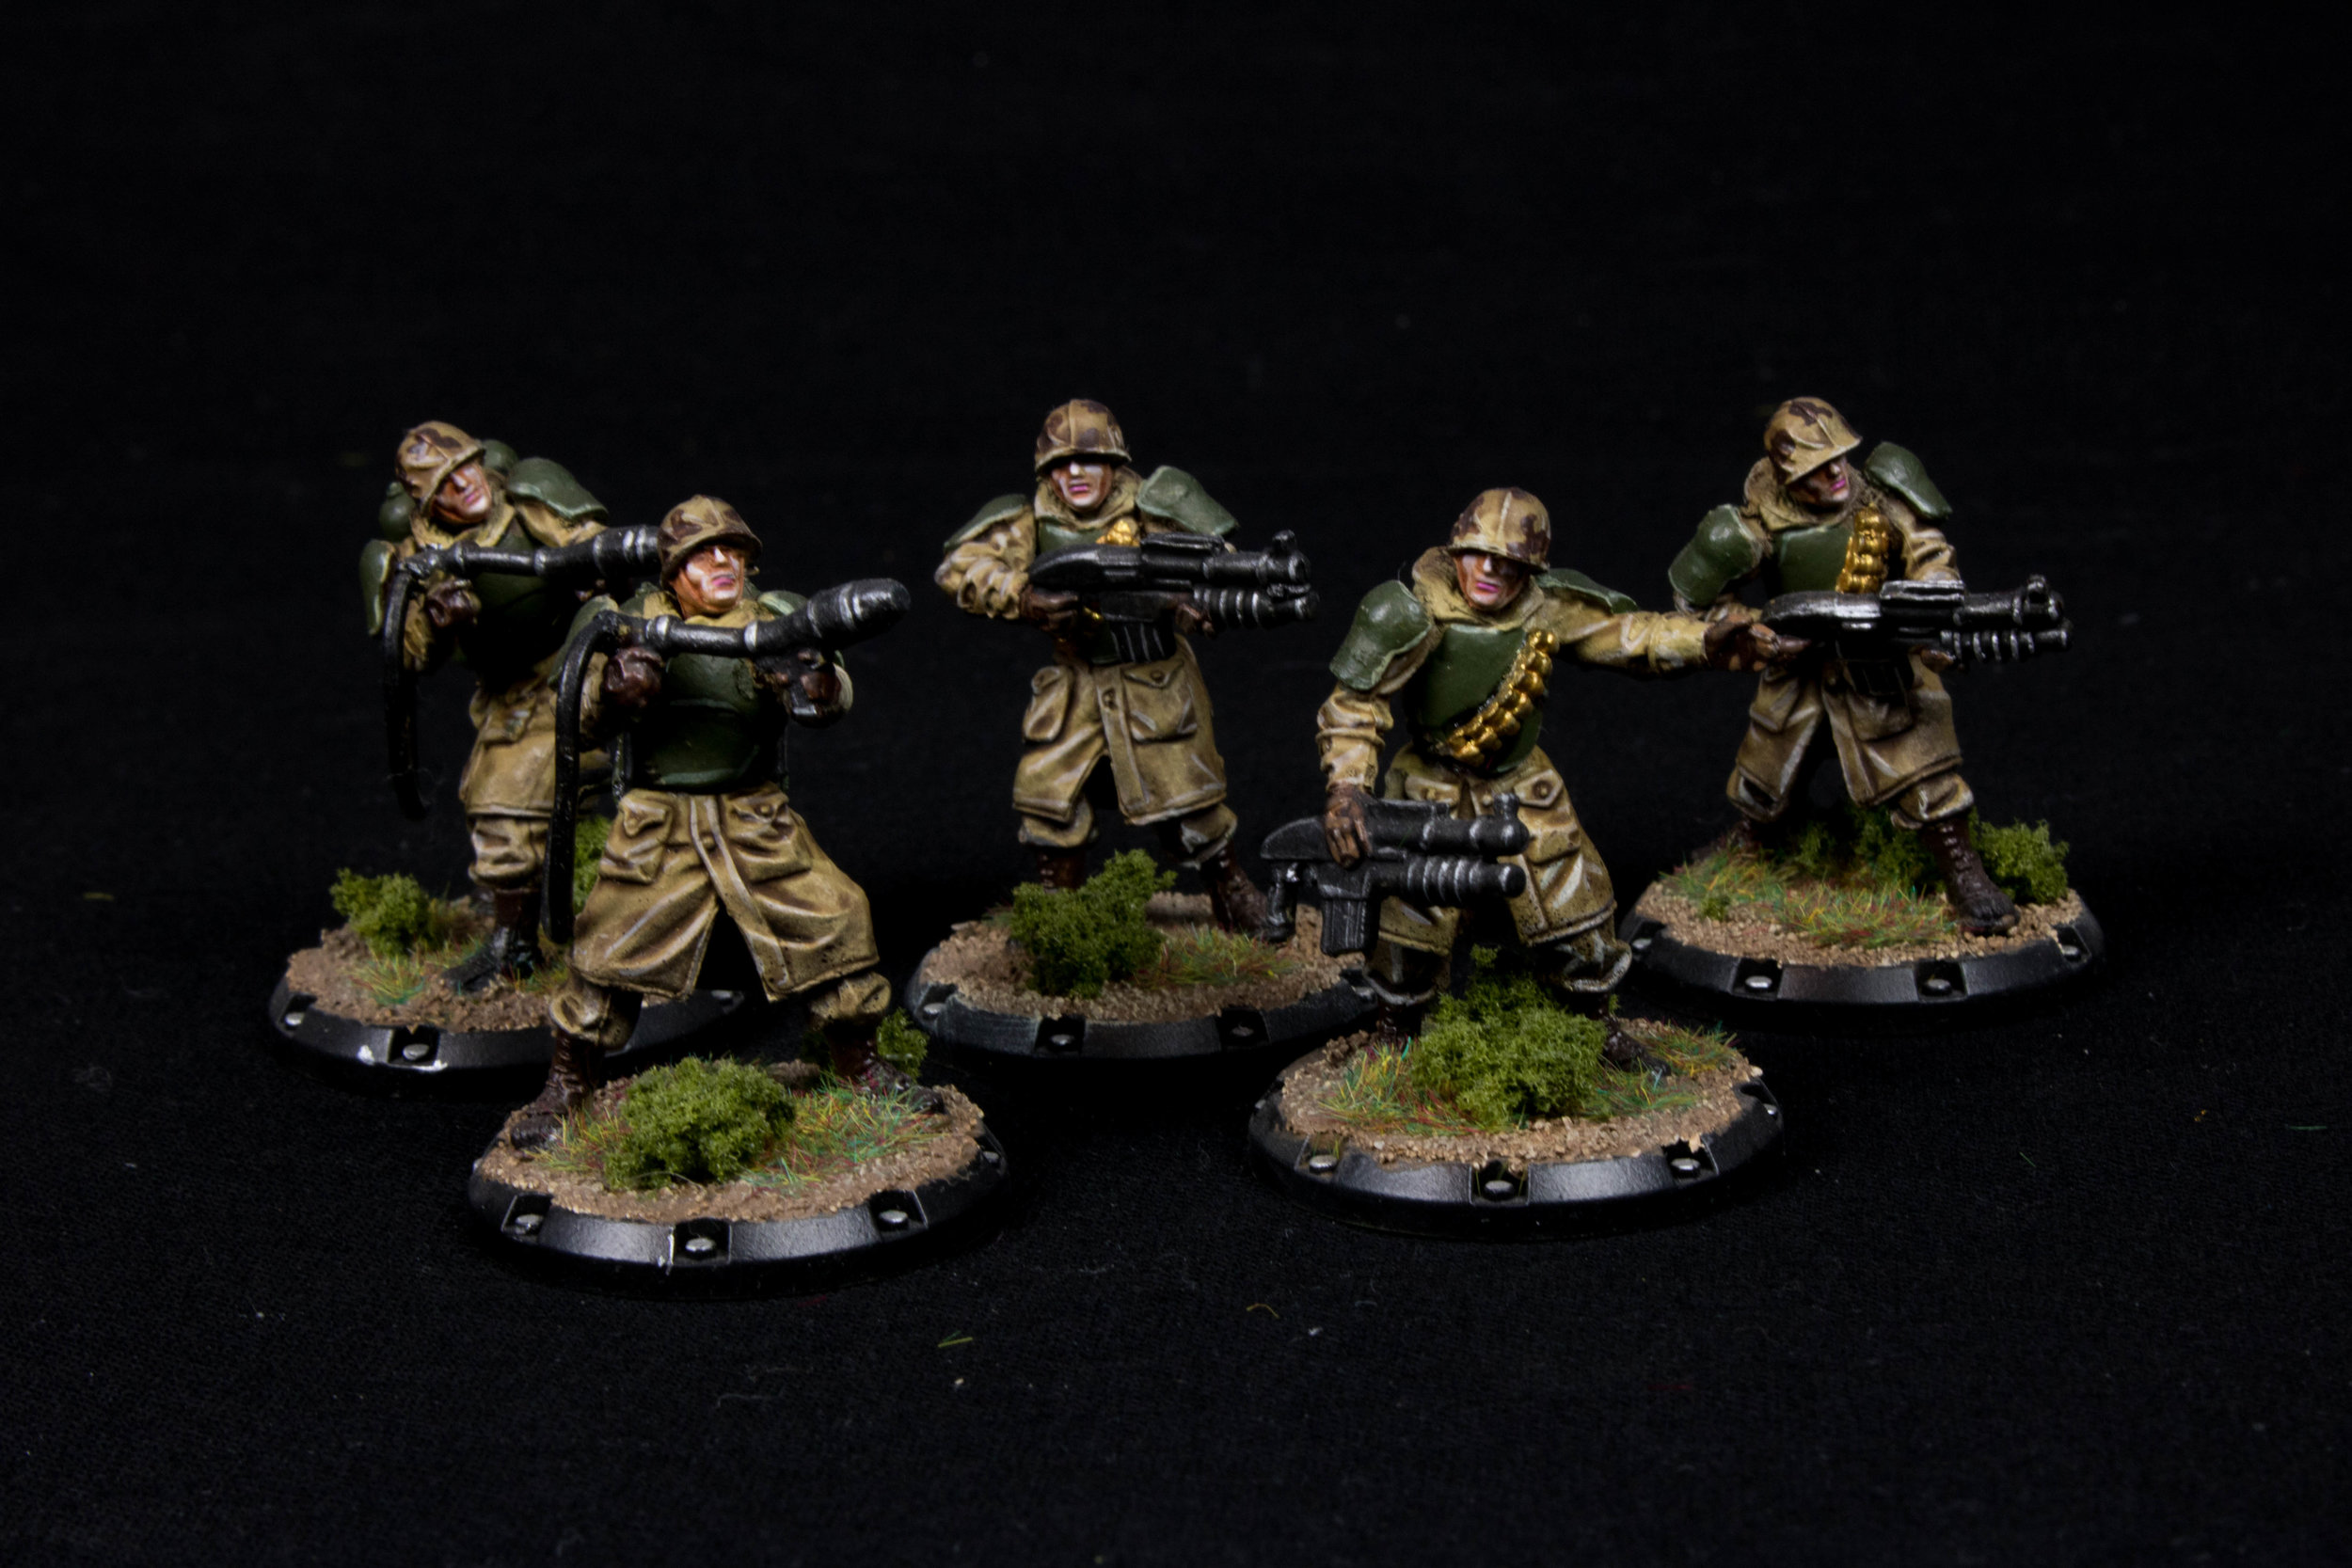 Dust Tactics WWII Warfare Germans Americans Axis Allies Bolt Action 28mm Alternate WWII-28.jpg